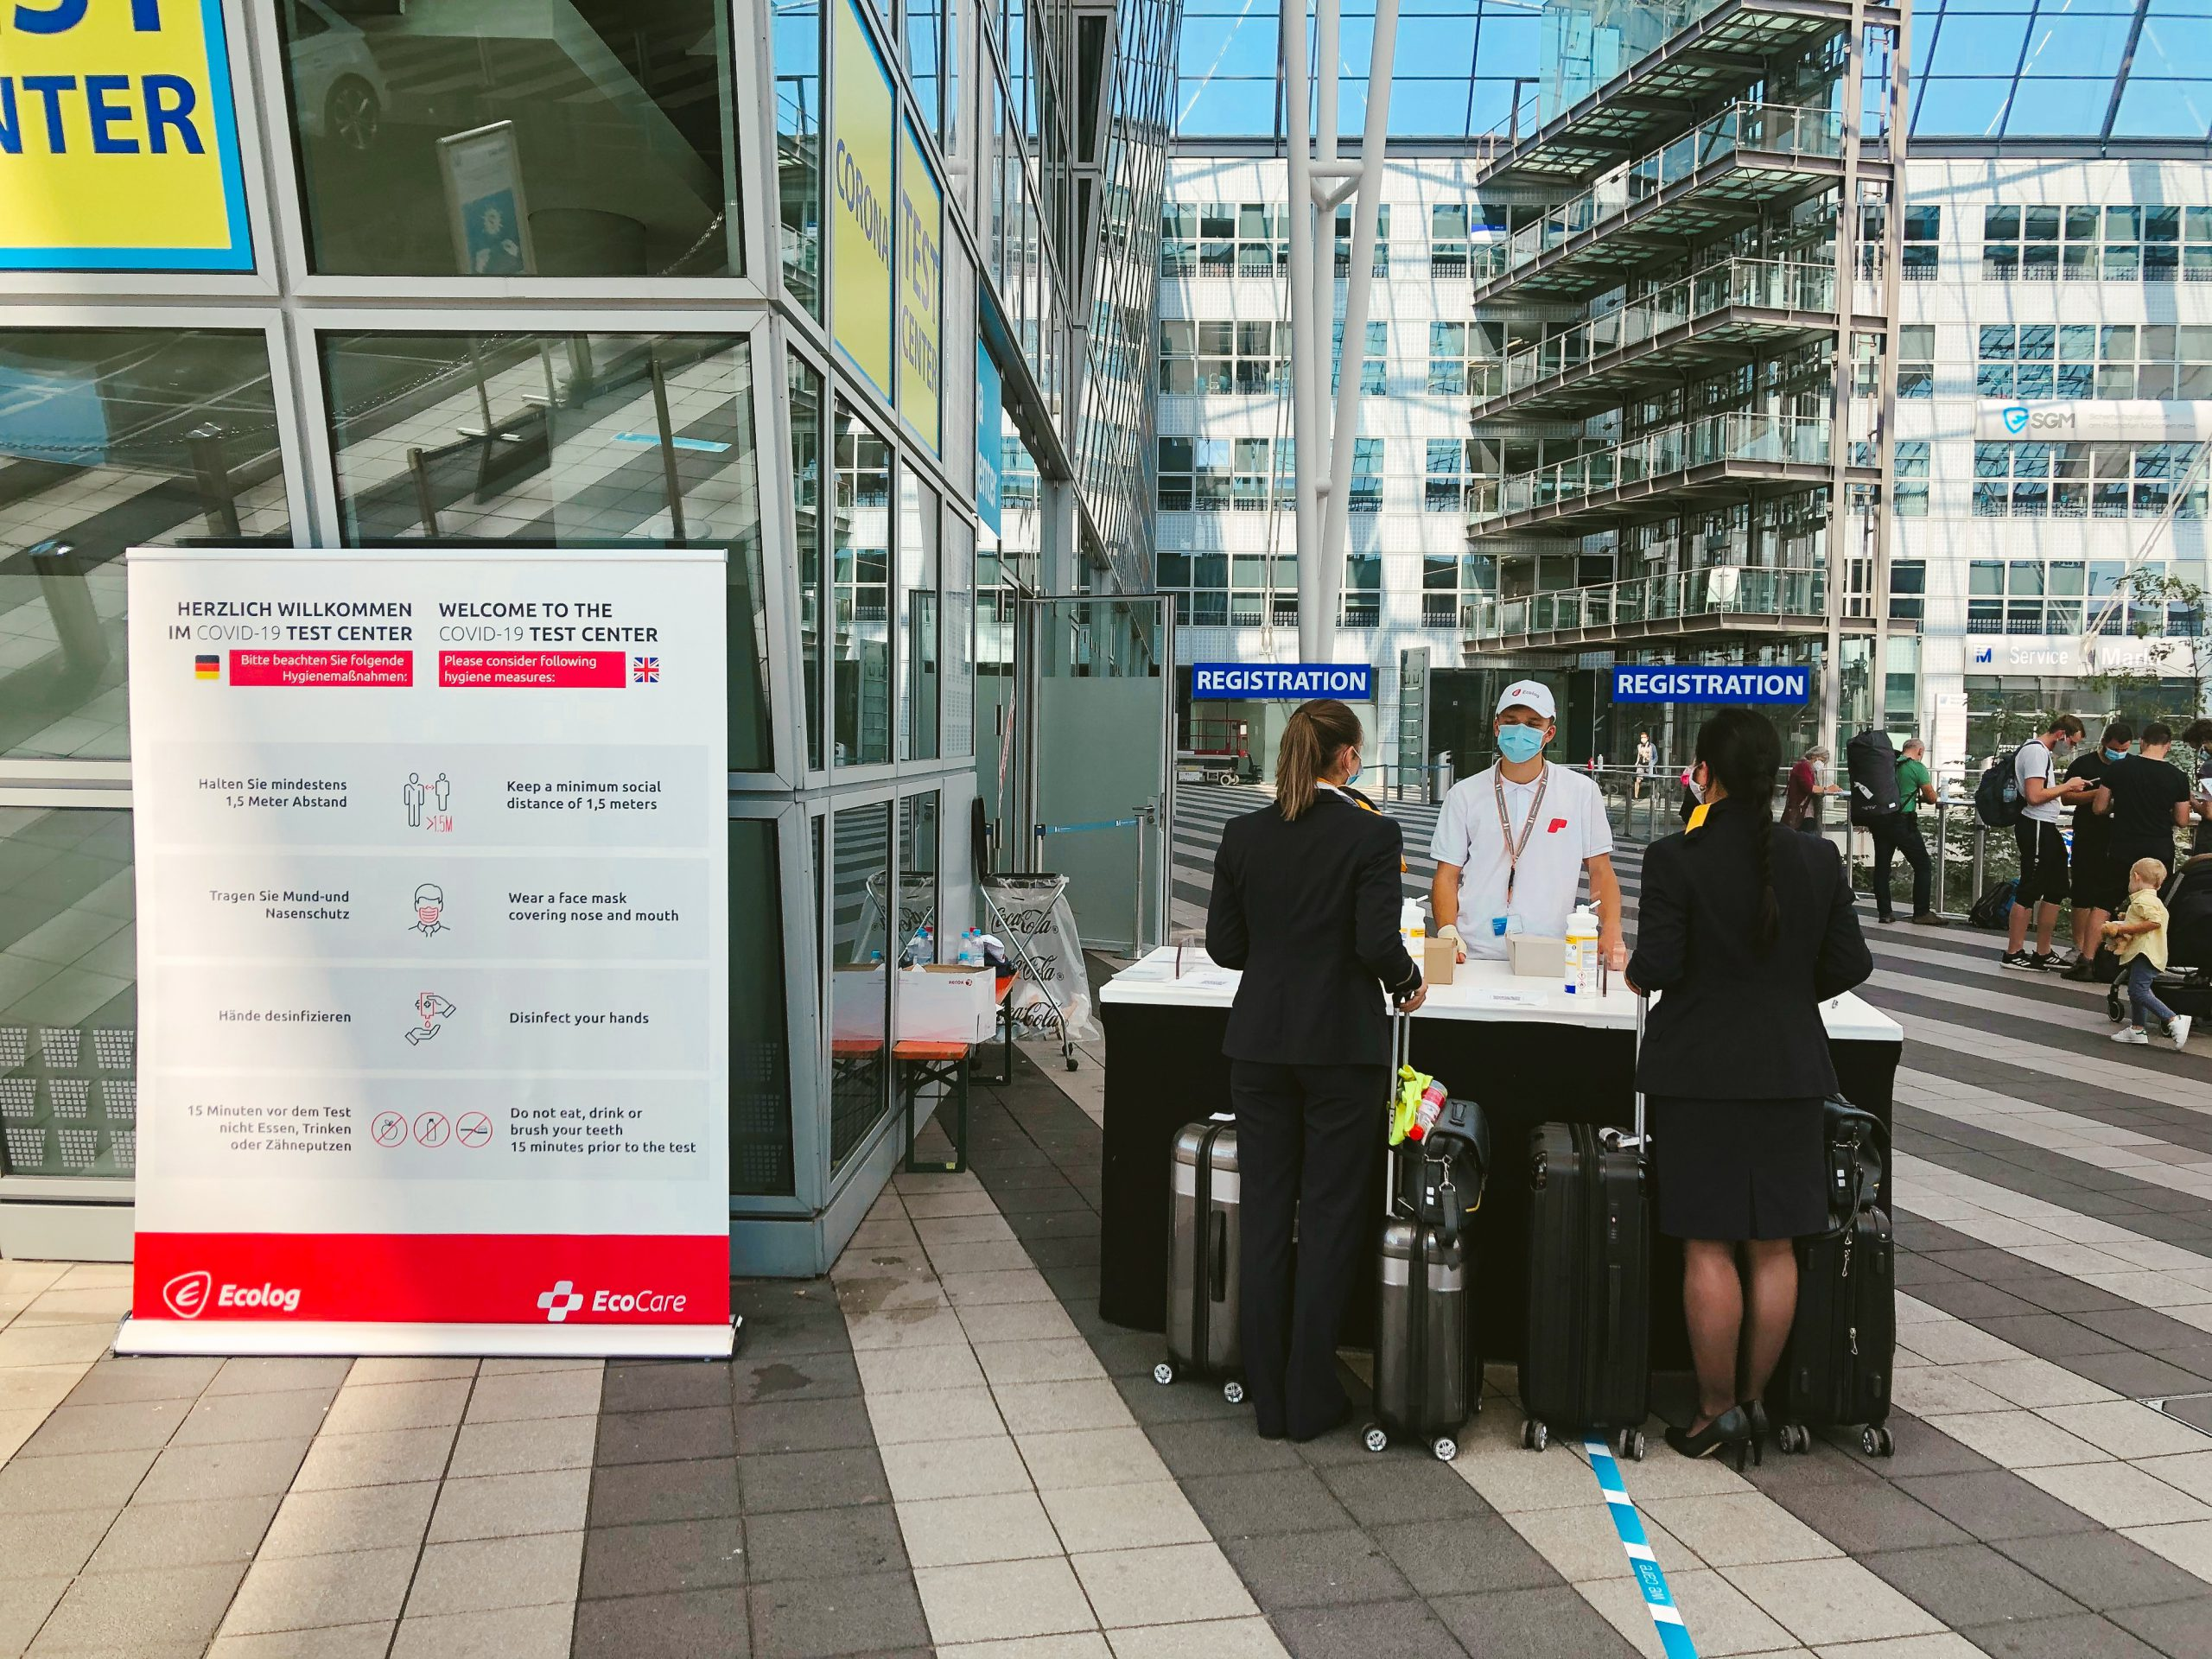 Bavarian State Office for Health and Food Safety has awarded Ecolog to perform COVID-19 Tests at Airports in Bavaria, Germany